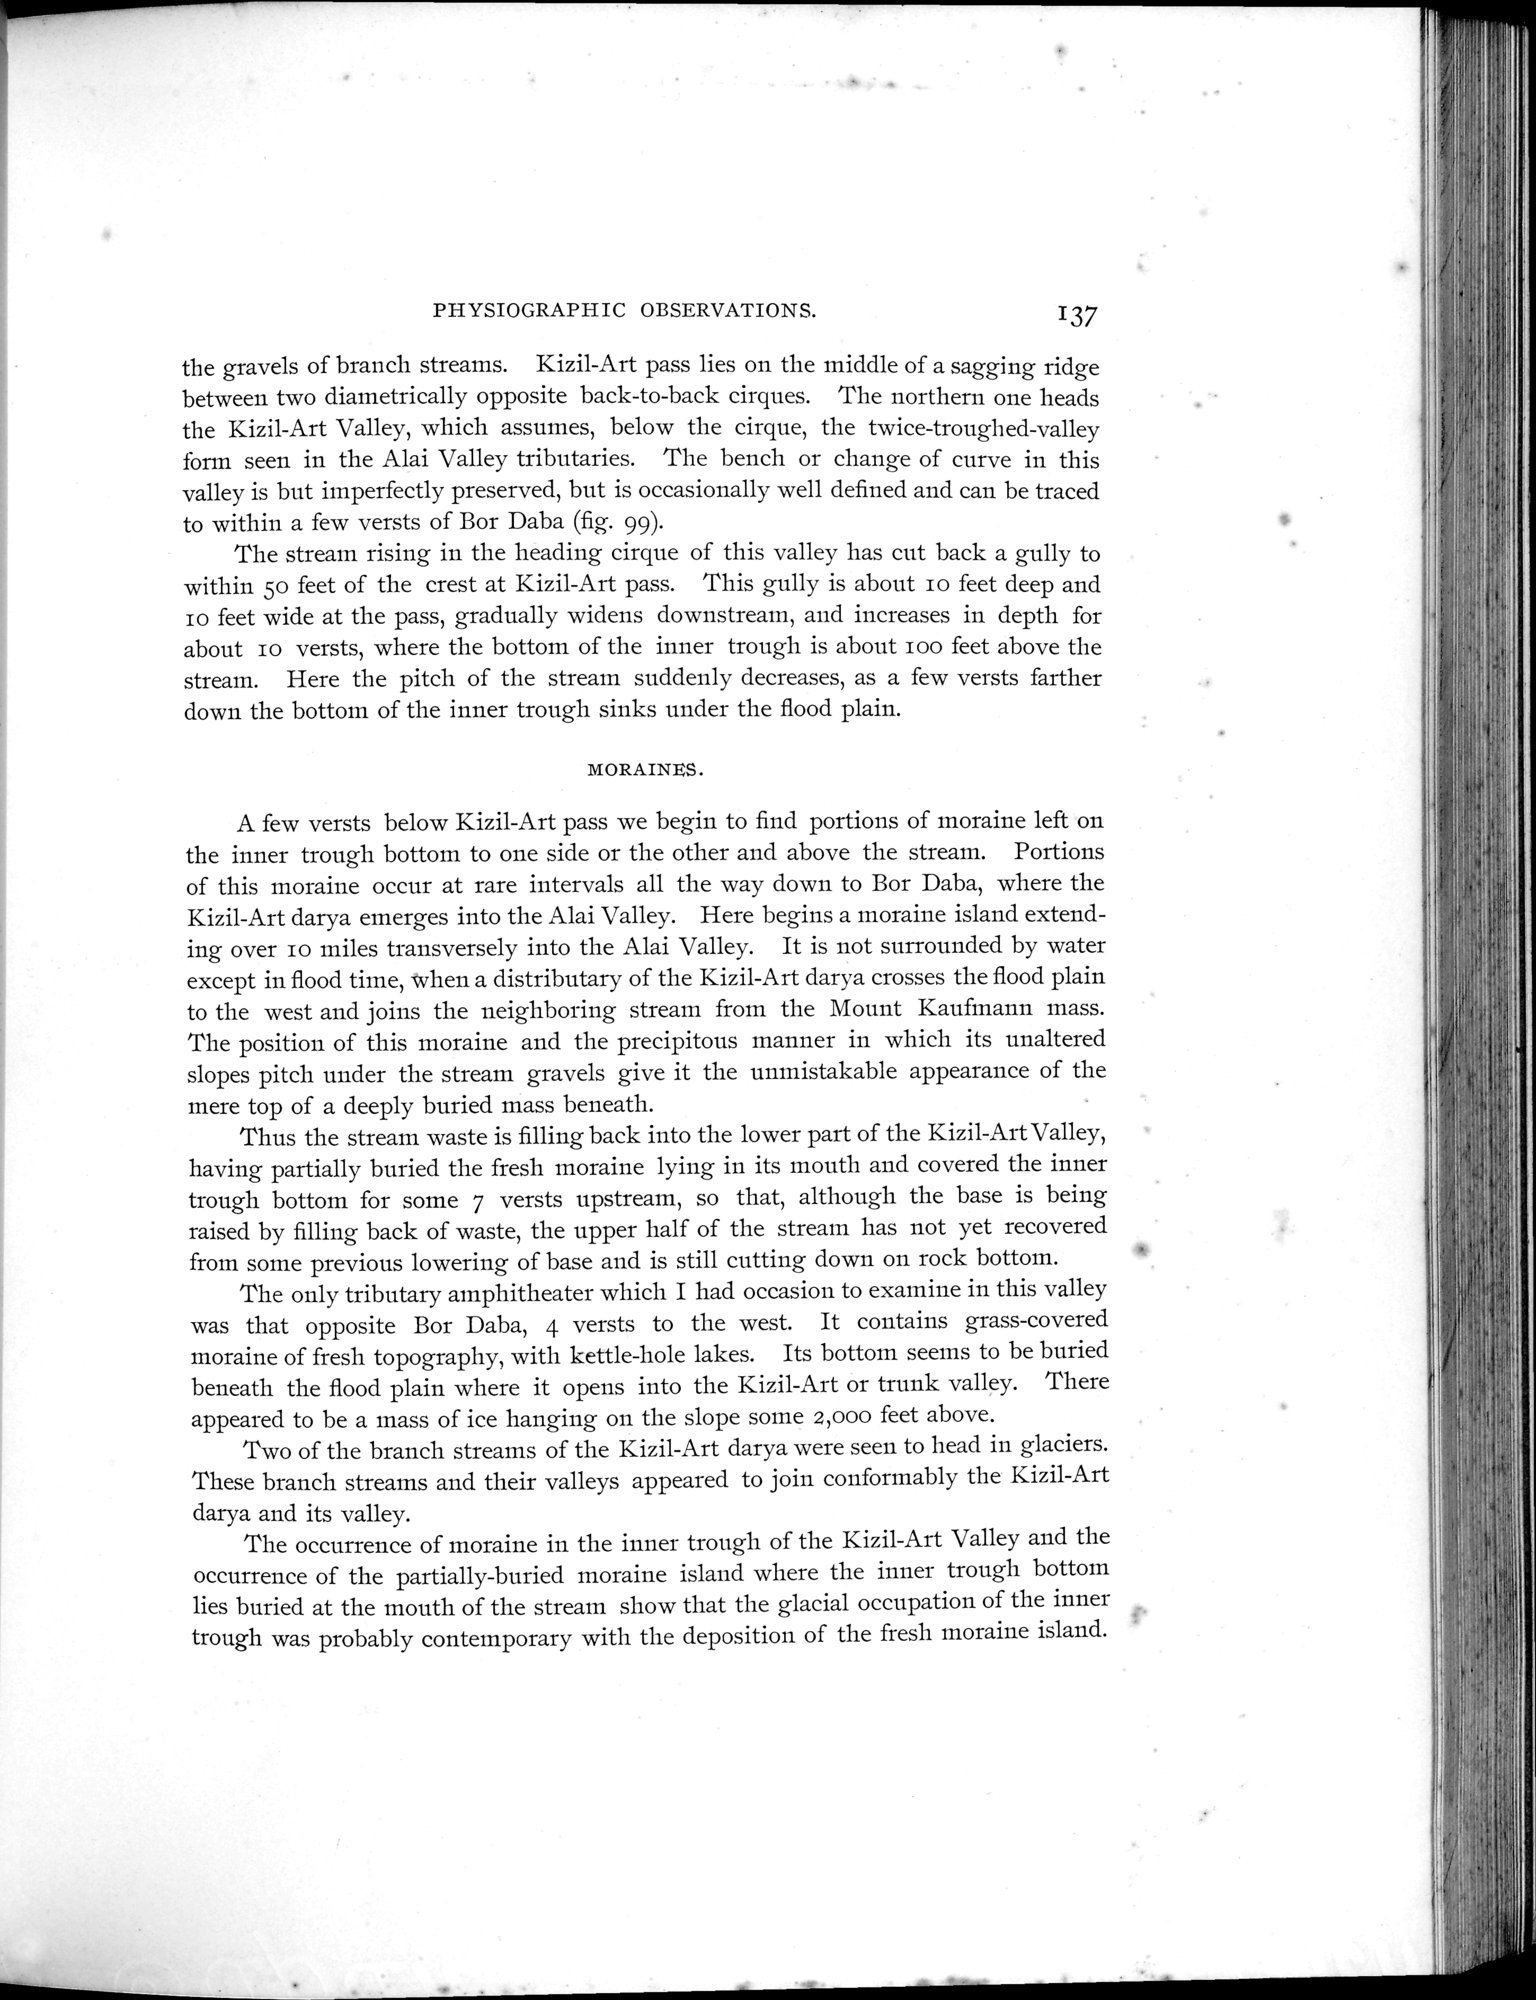 Explorations in Turkestan 1903 : vol.1 / Page 163 (Grayscale High Resolution Image)